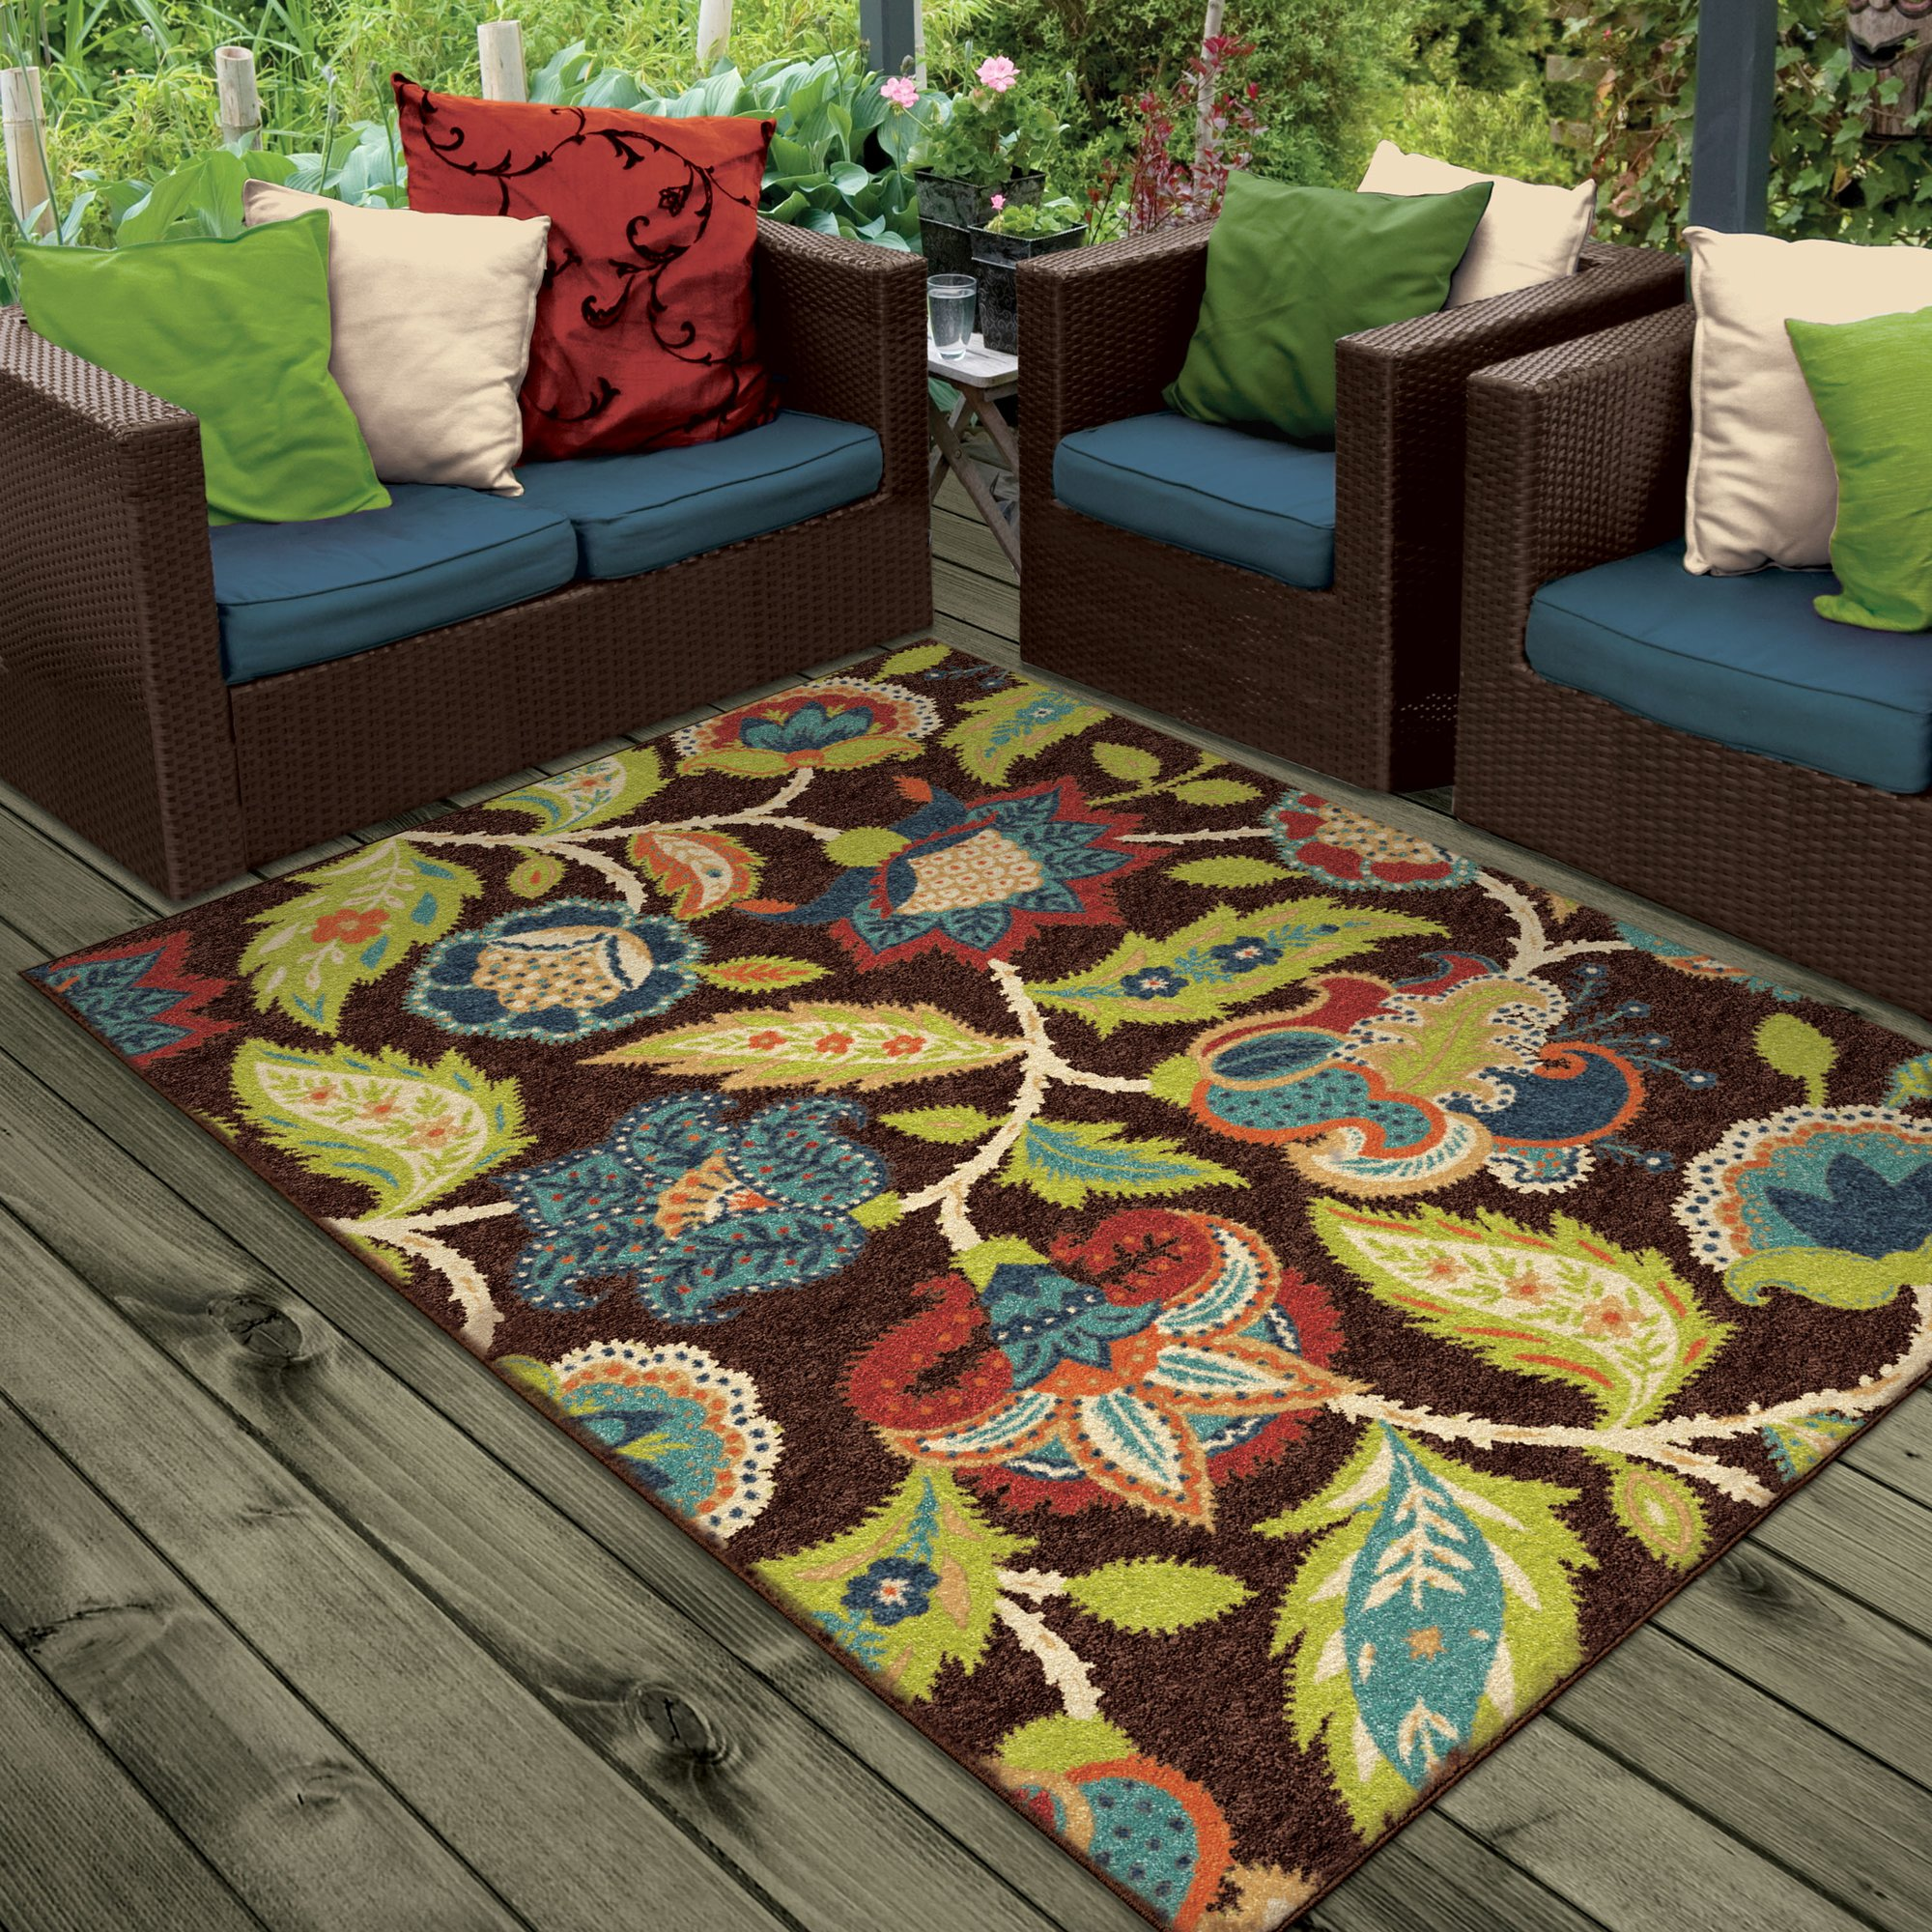 Importance of outdoor rugs